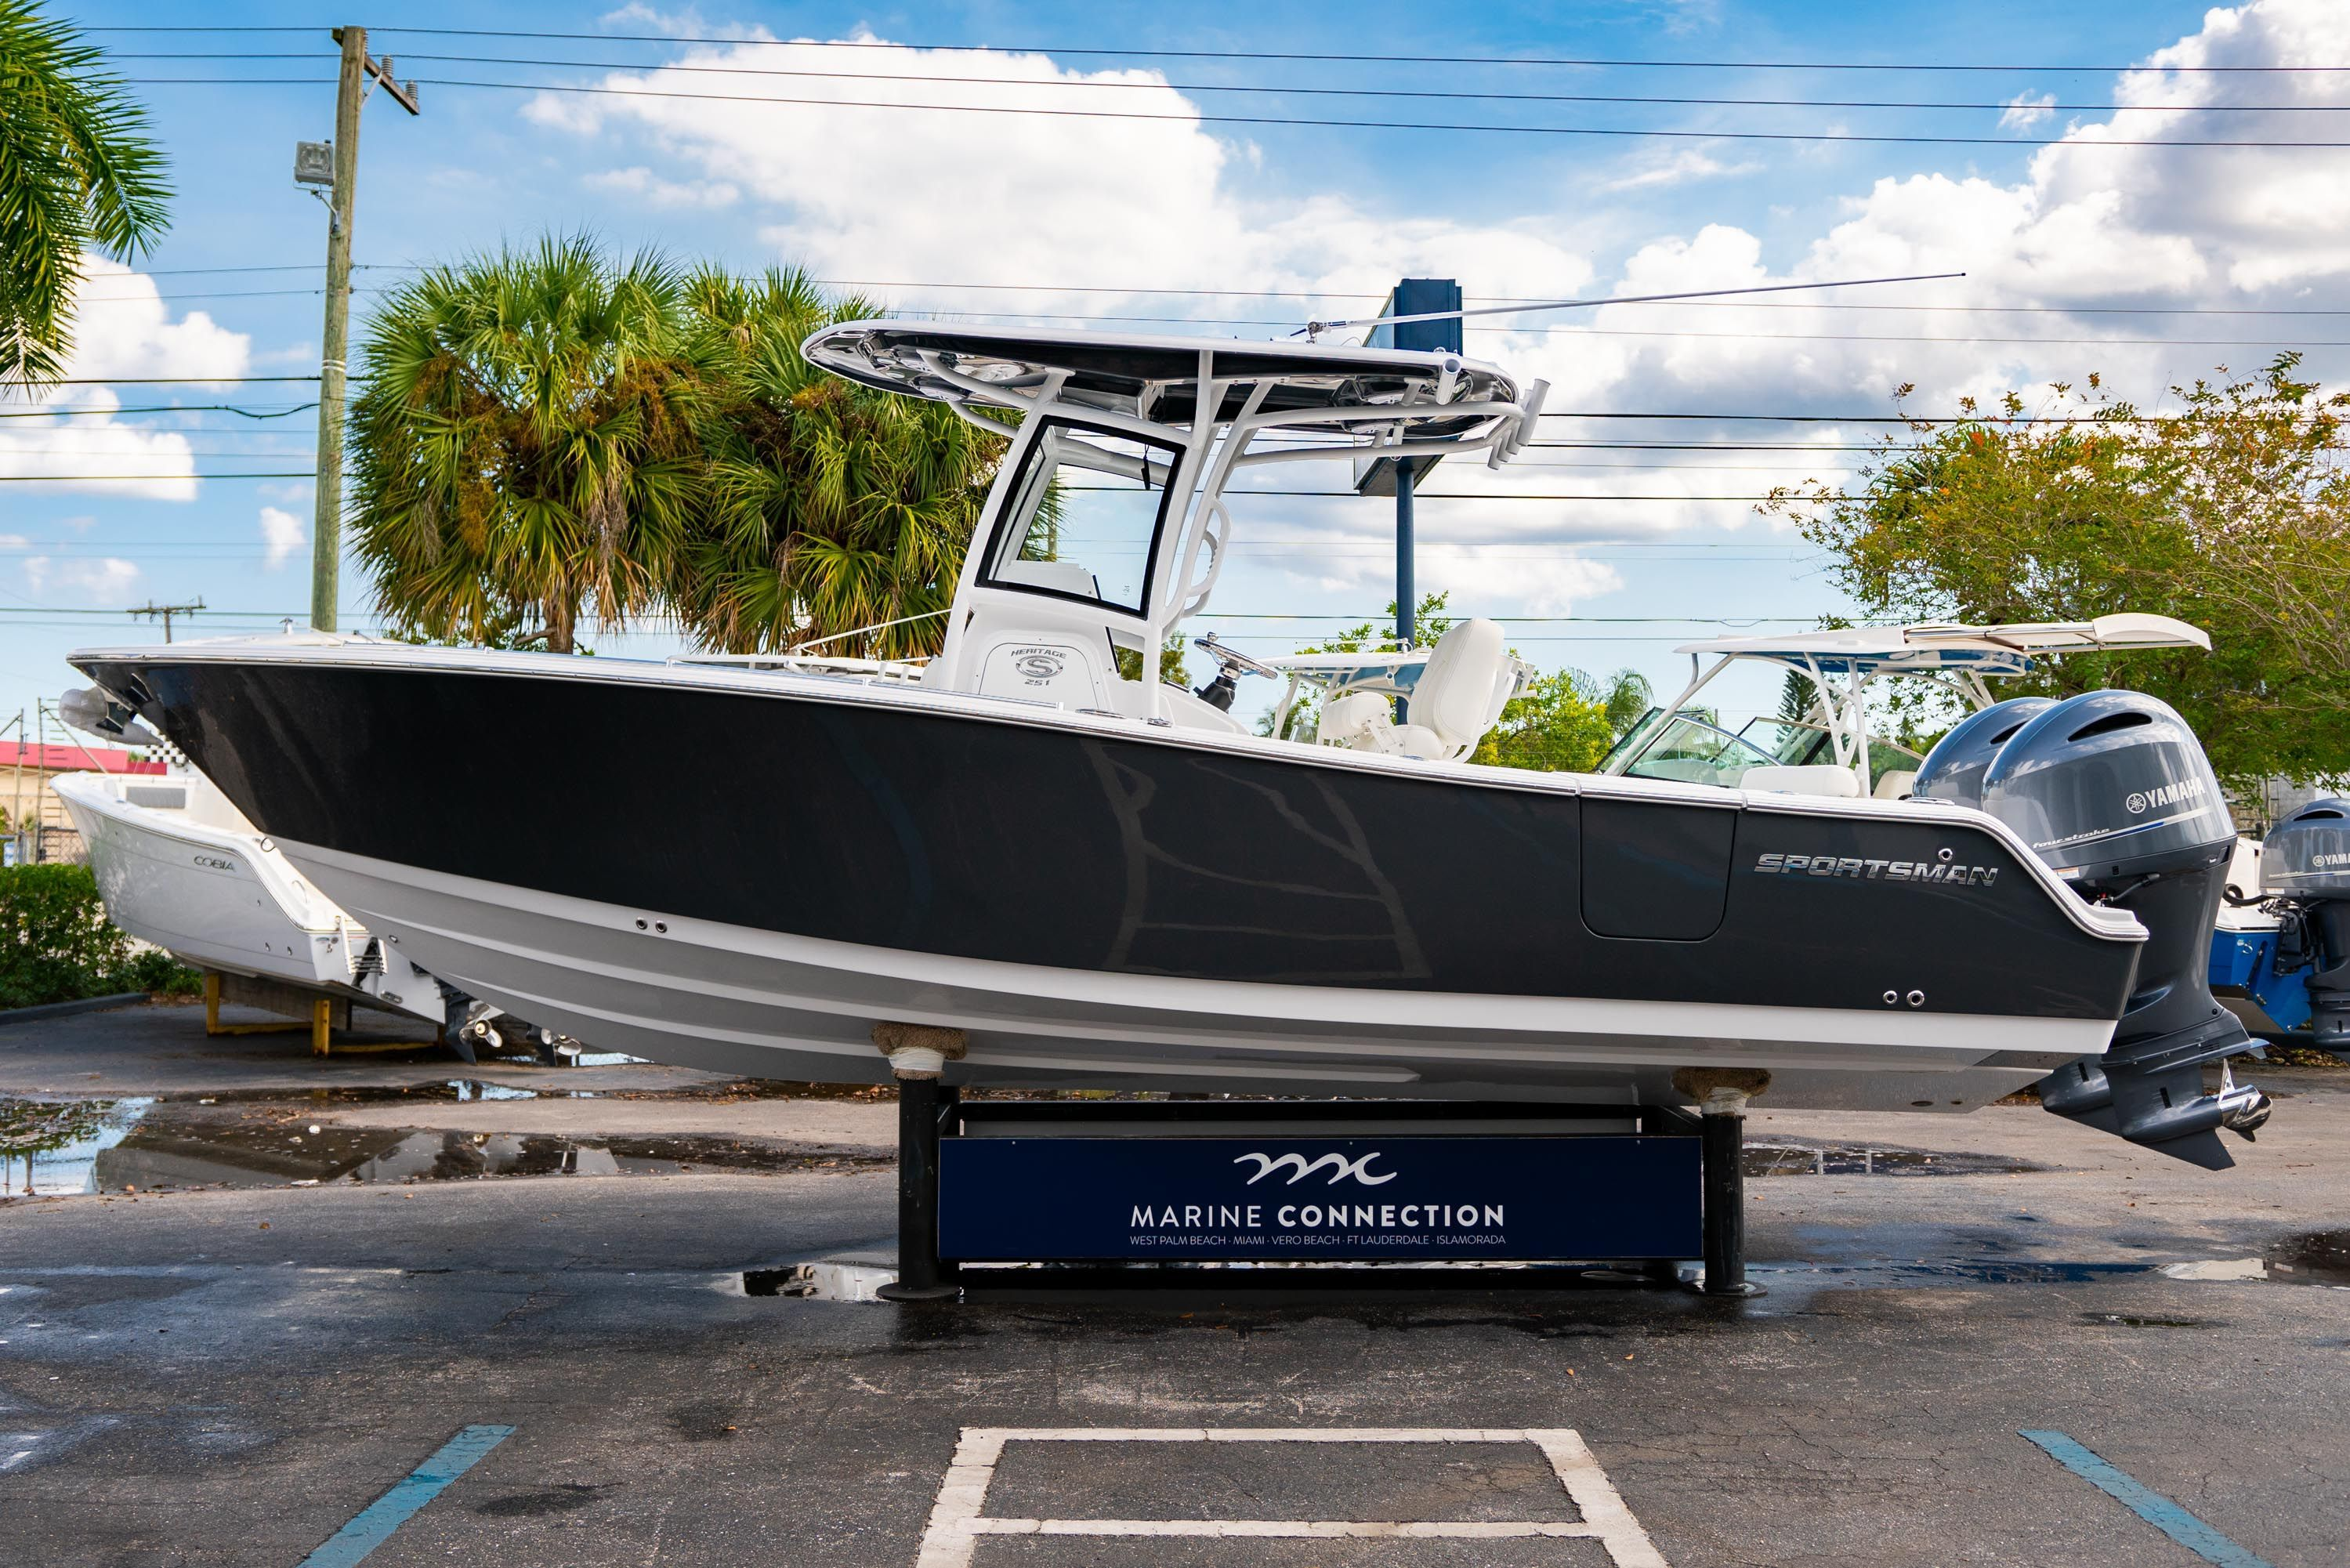 Thumbnail 4 for New 2020 Sportsman Heritage 251 Center Console boat for sale in West Palm Beach, FL